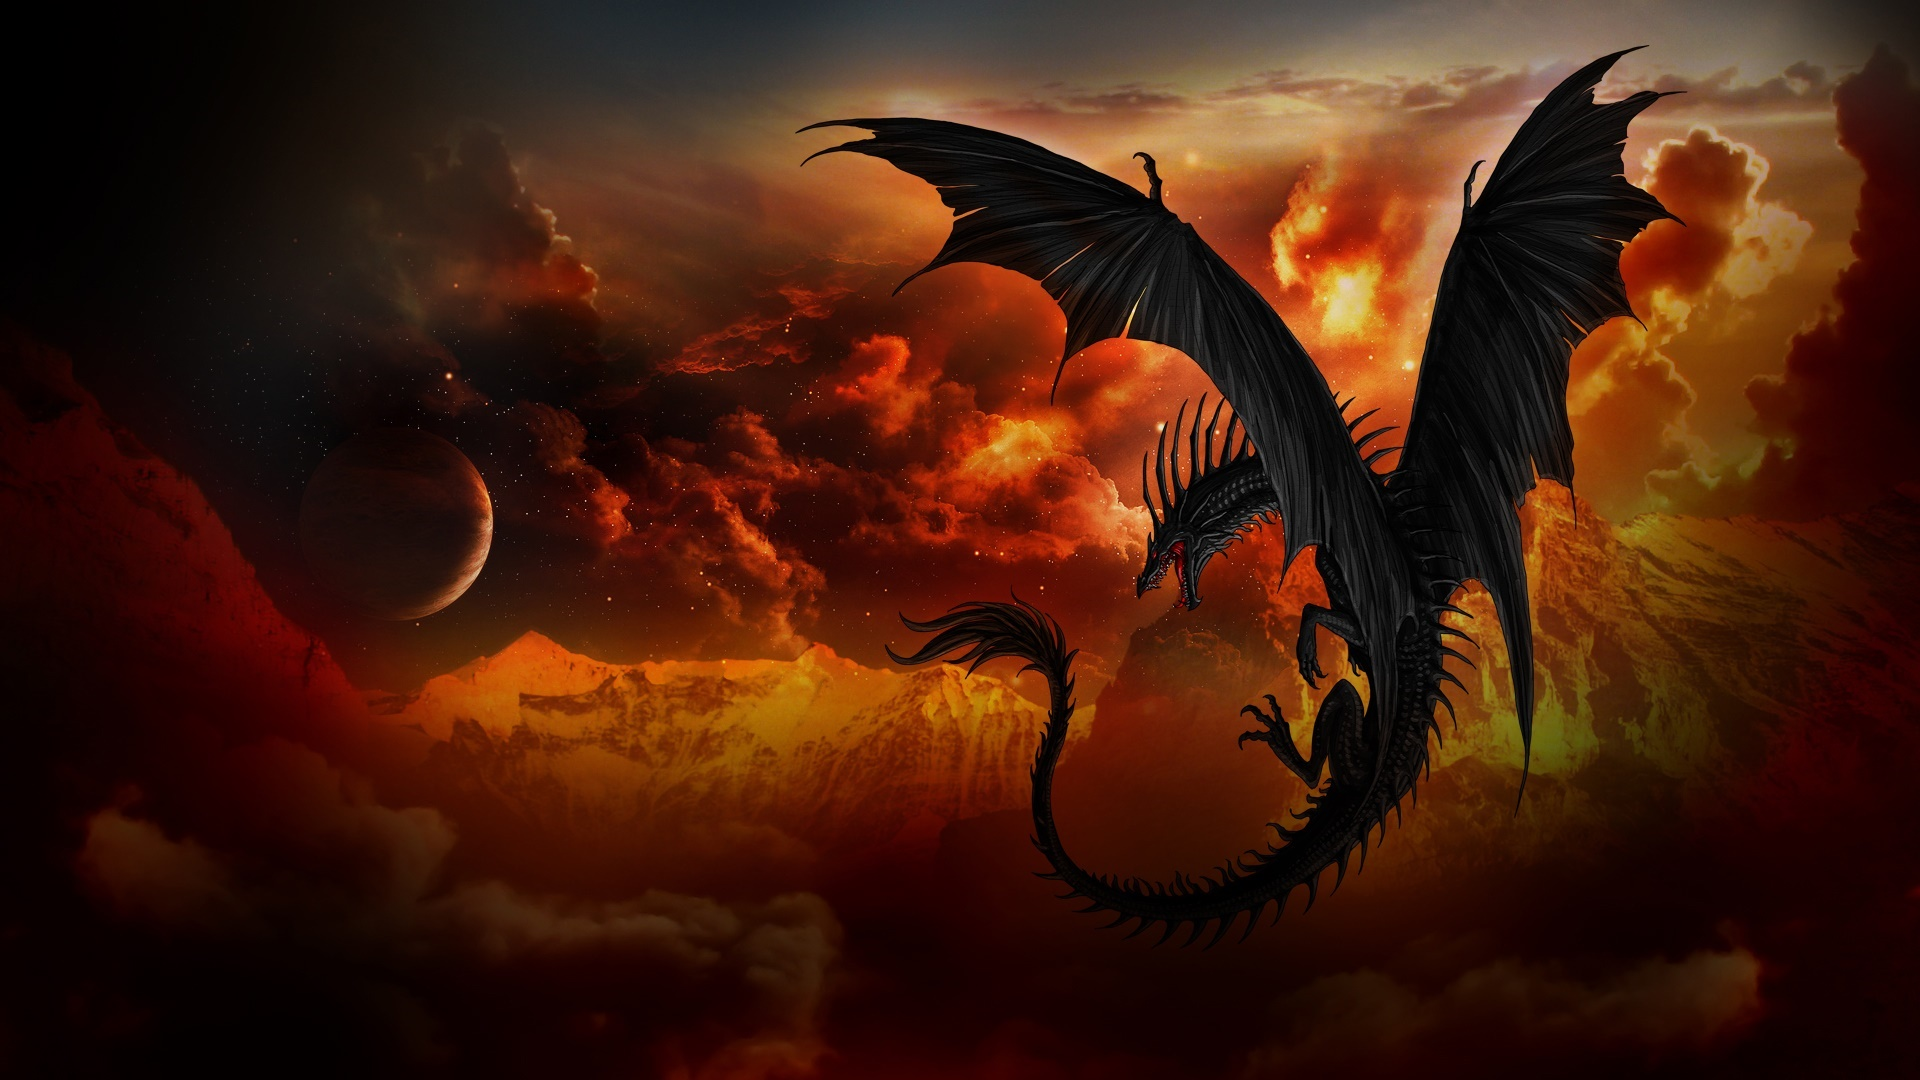 fdbdbdfdae-fire-dragon-dragon-art-wallpaper-wp3601369